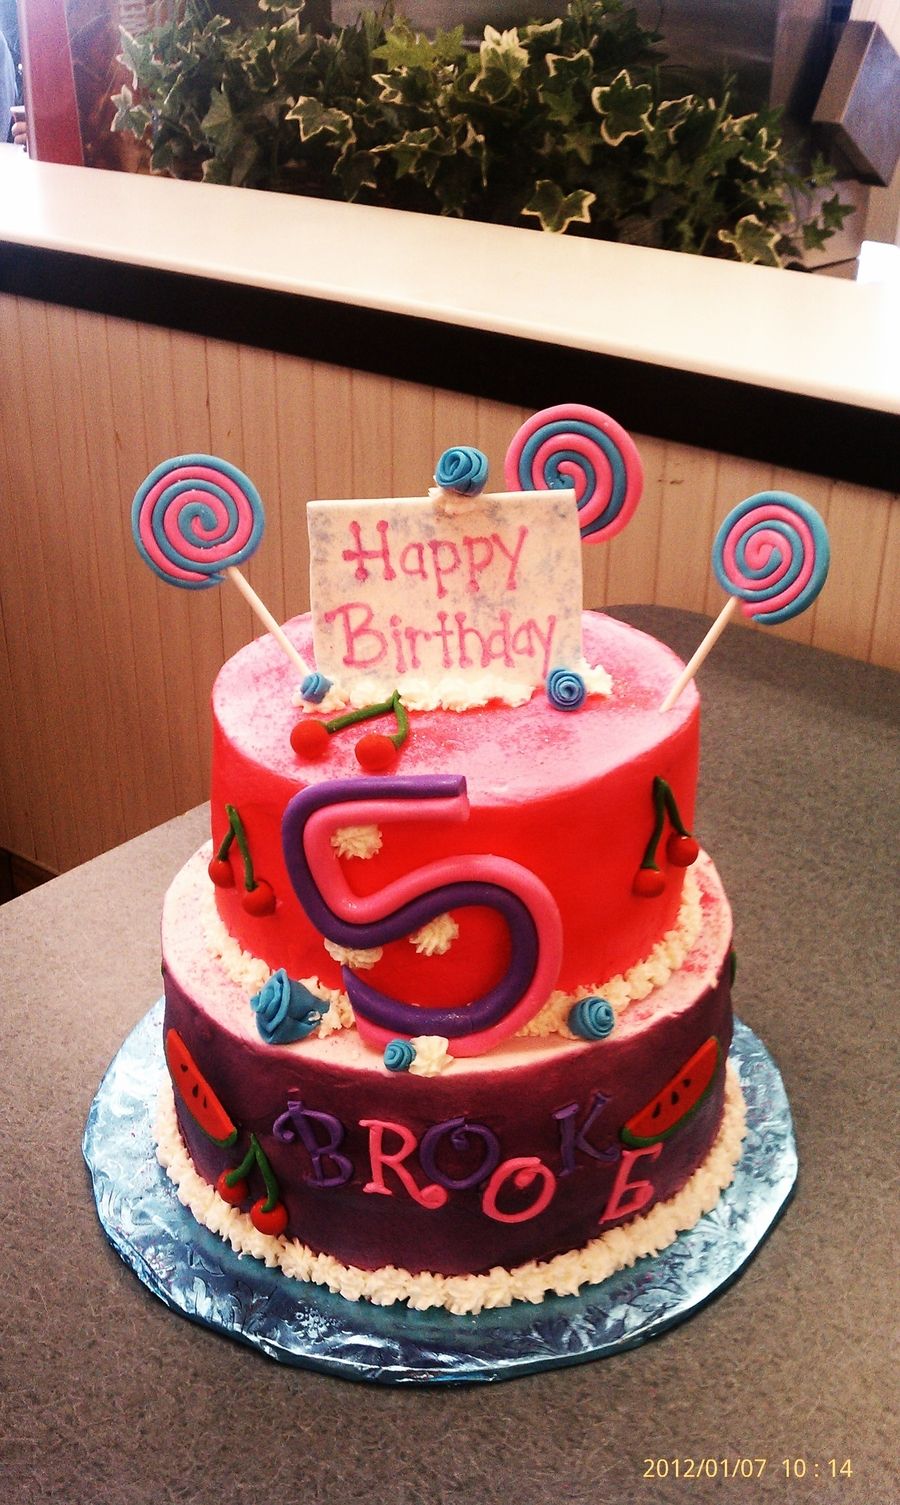 Phenomenal Katy Perry Birthday Cake Cakecentral Com Personalised Birthday Cards Veneteletsinfo